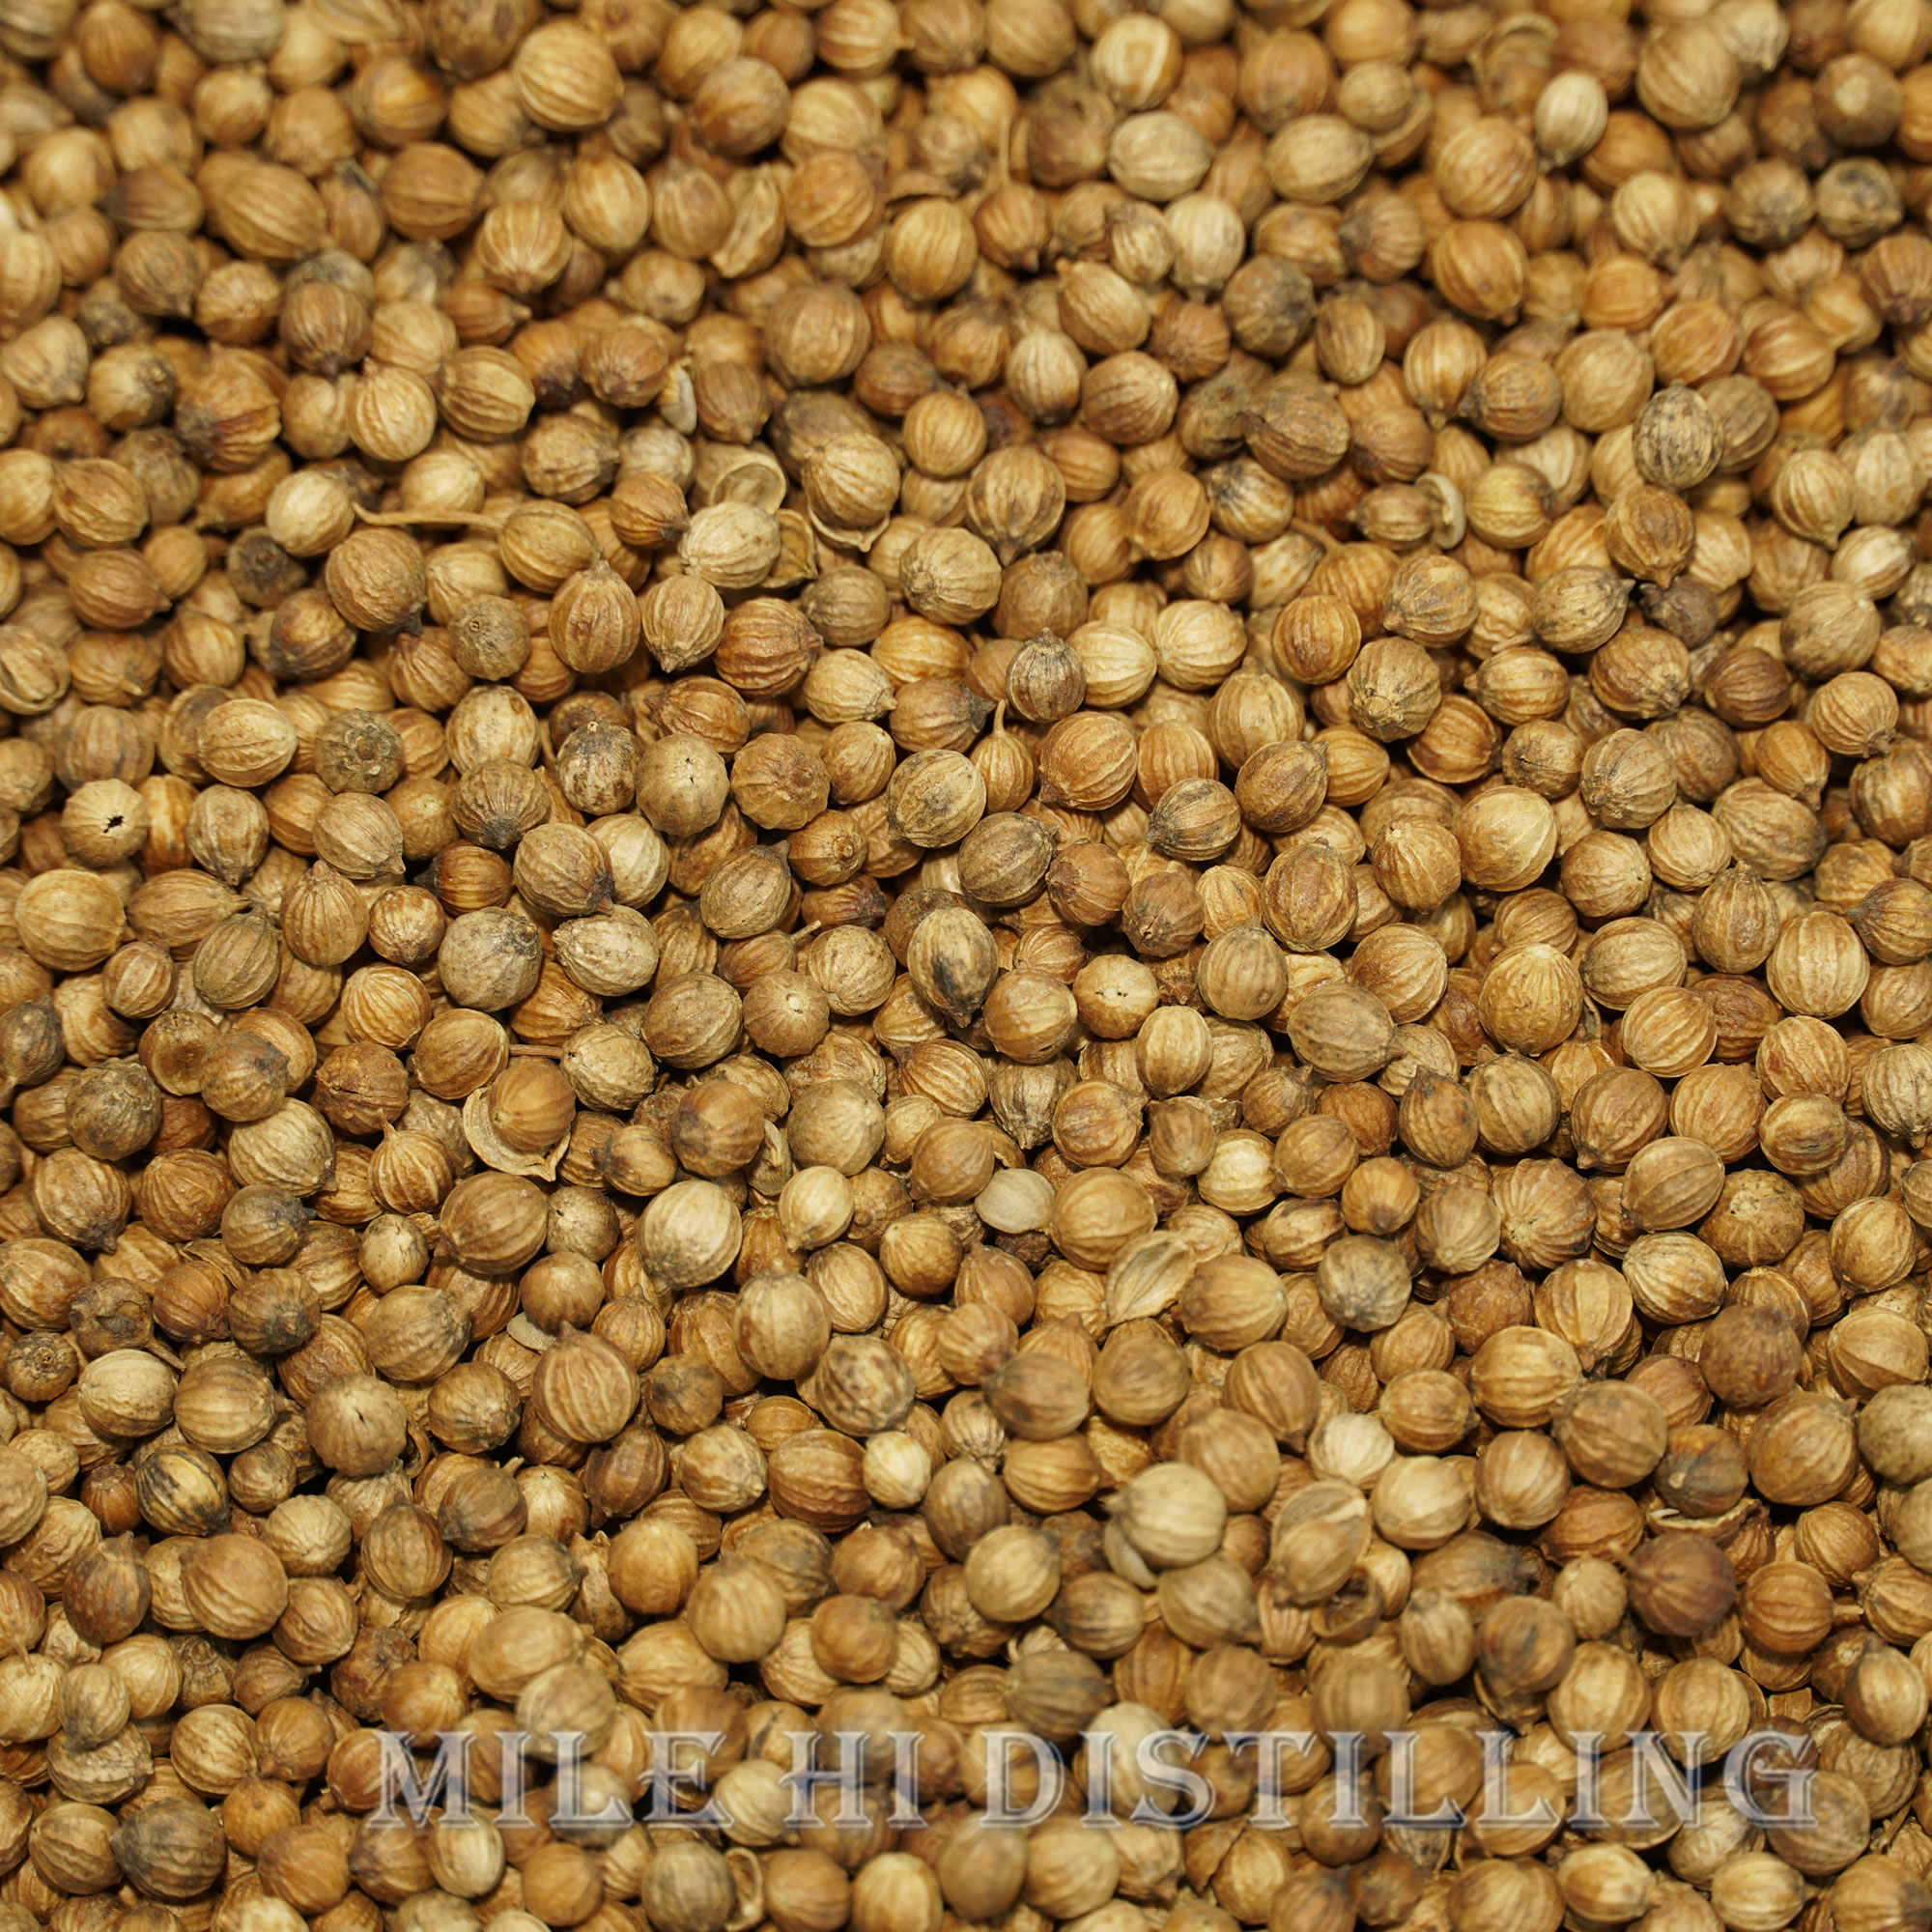 Coriander Seed Distilling Supplies